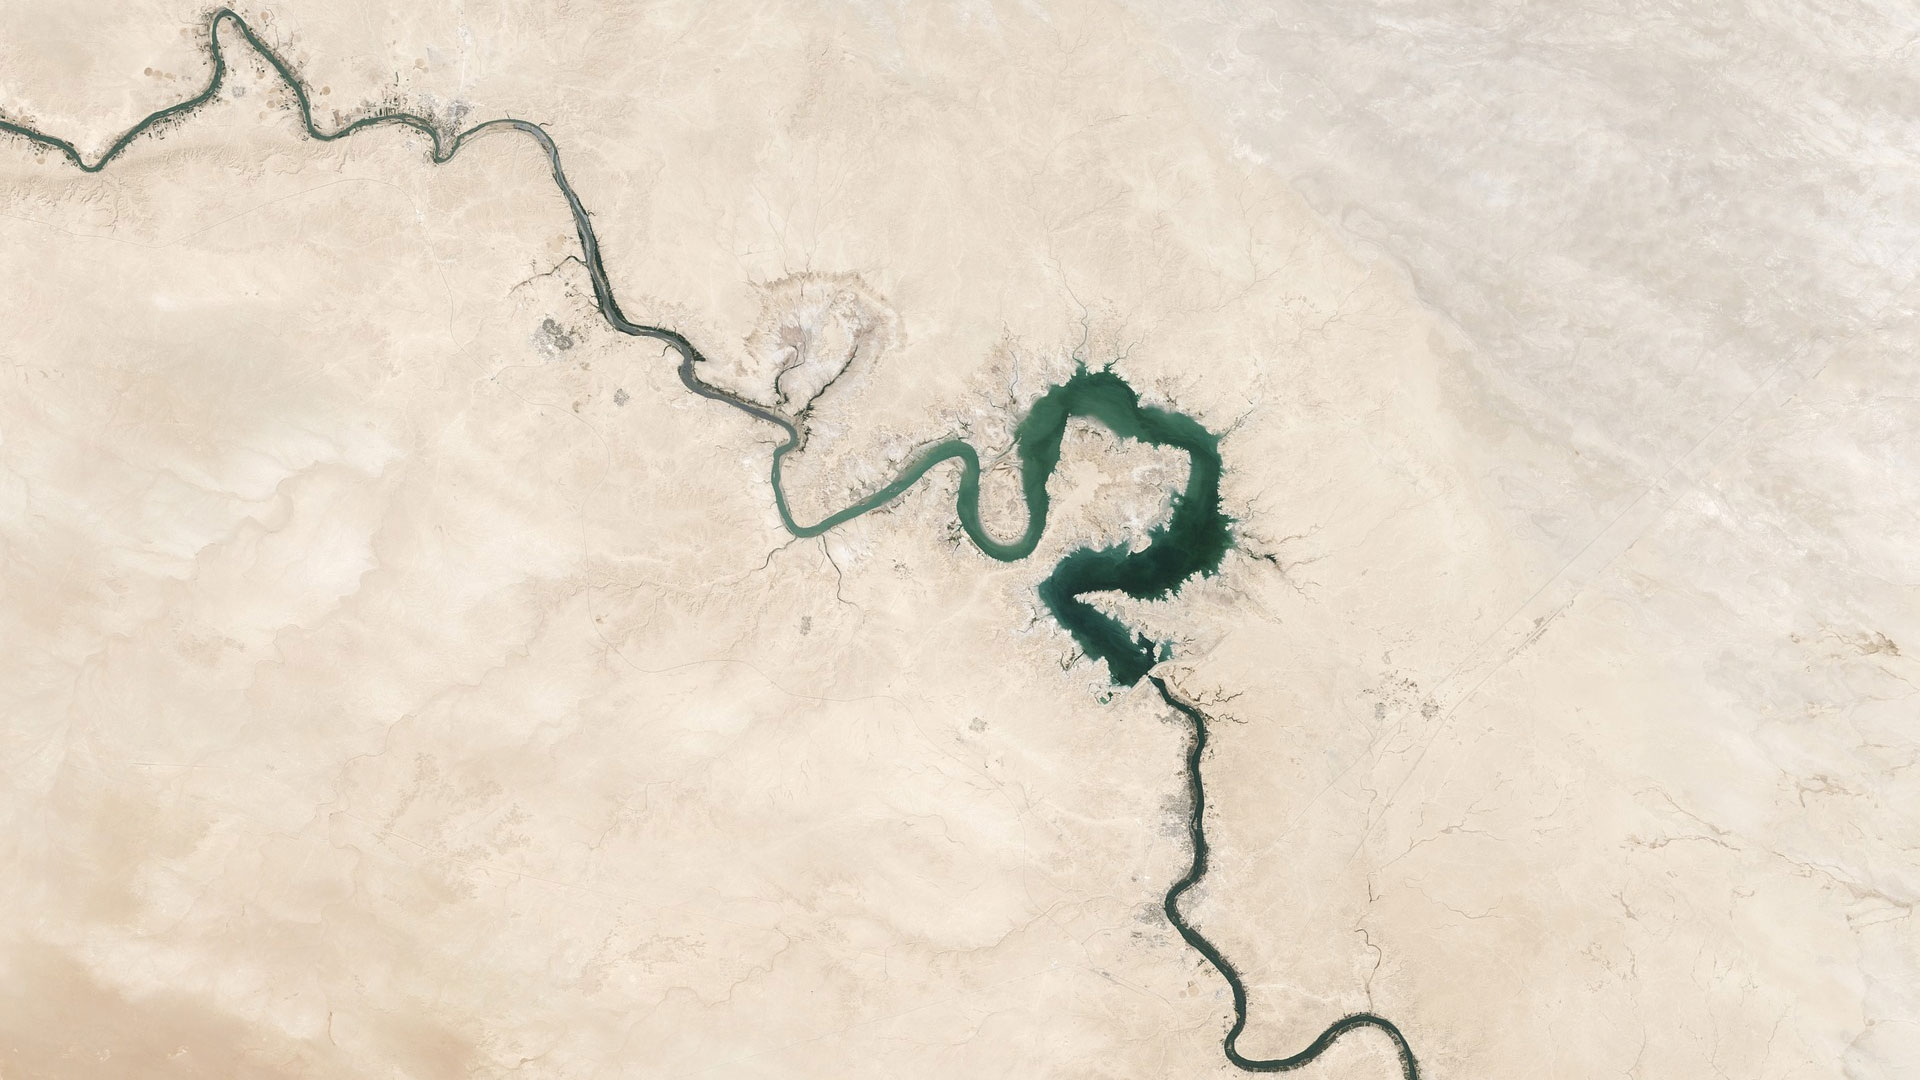 The fertile crescent is becoming arid: millions of people at risk in Syria - LifeGate